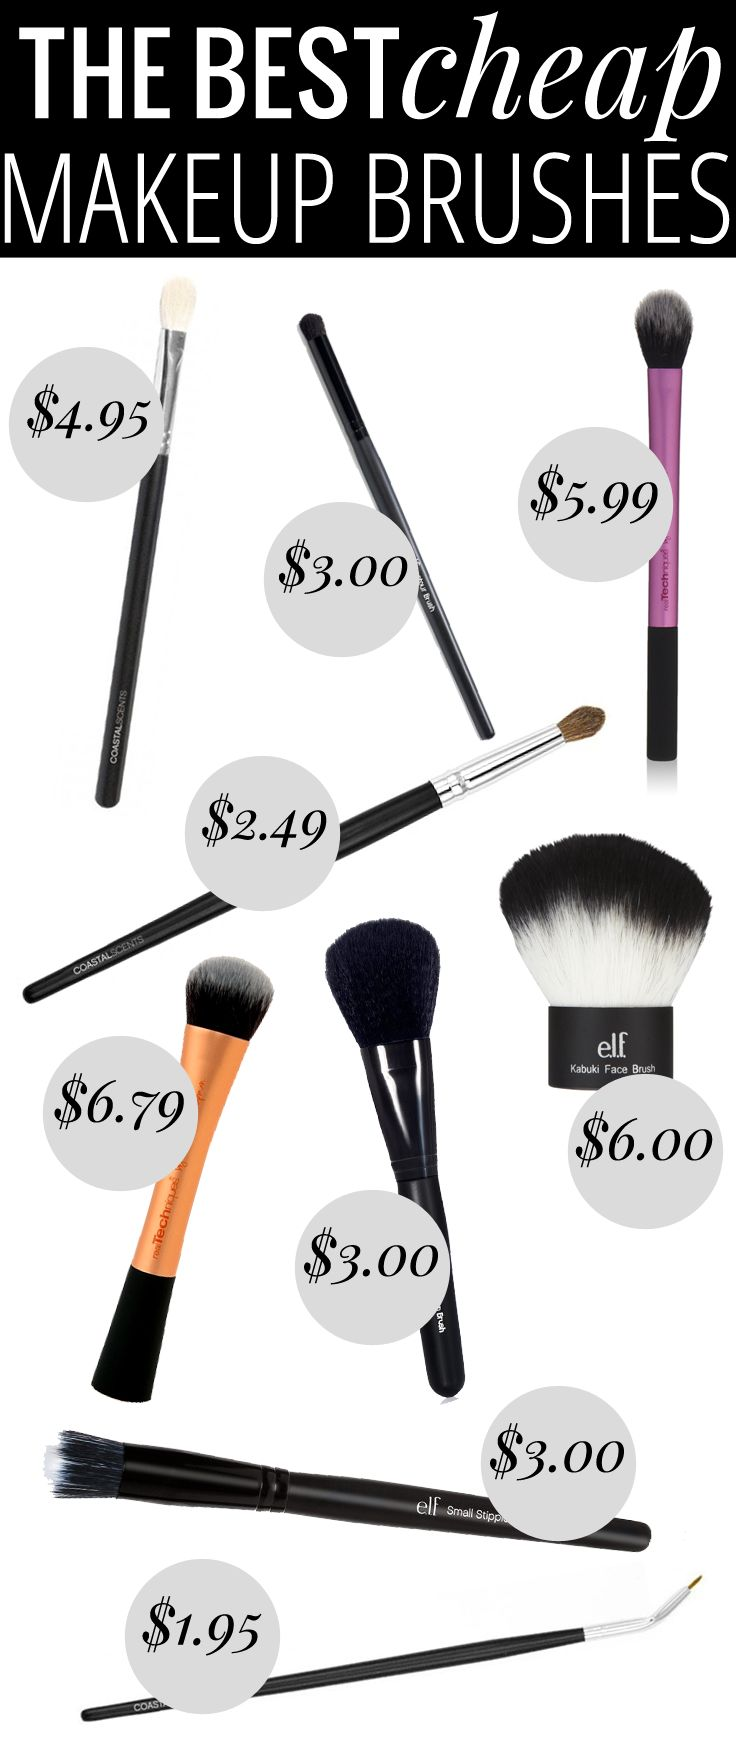 The Best Cheap Makeup Brushes - every brush you'll need, all for under $10 (and most under $5)